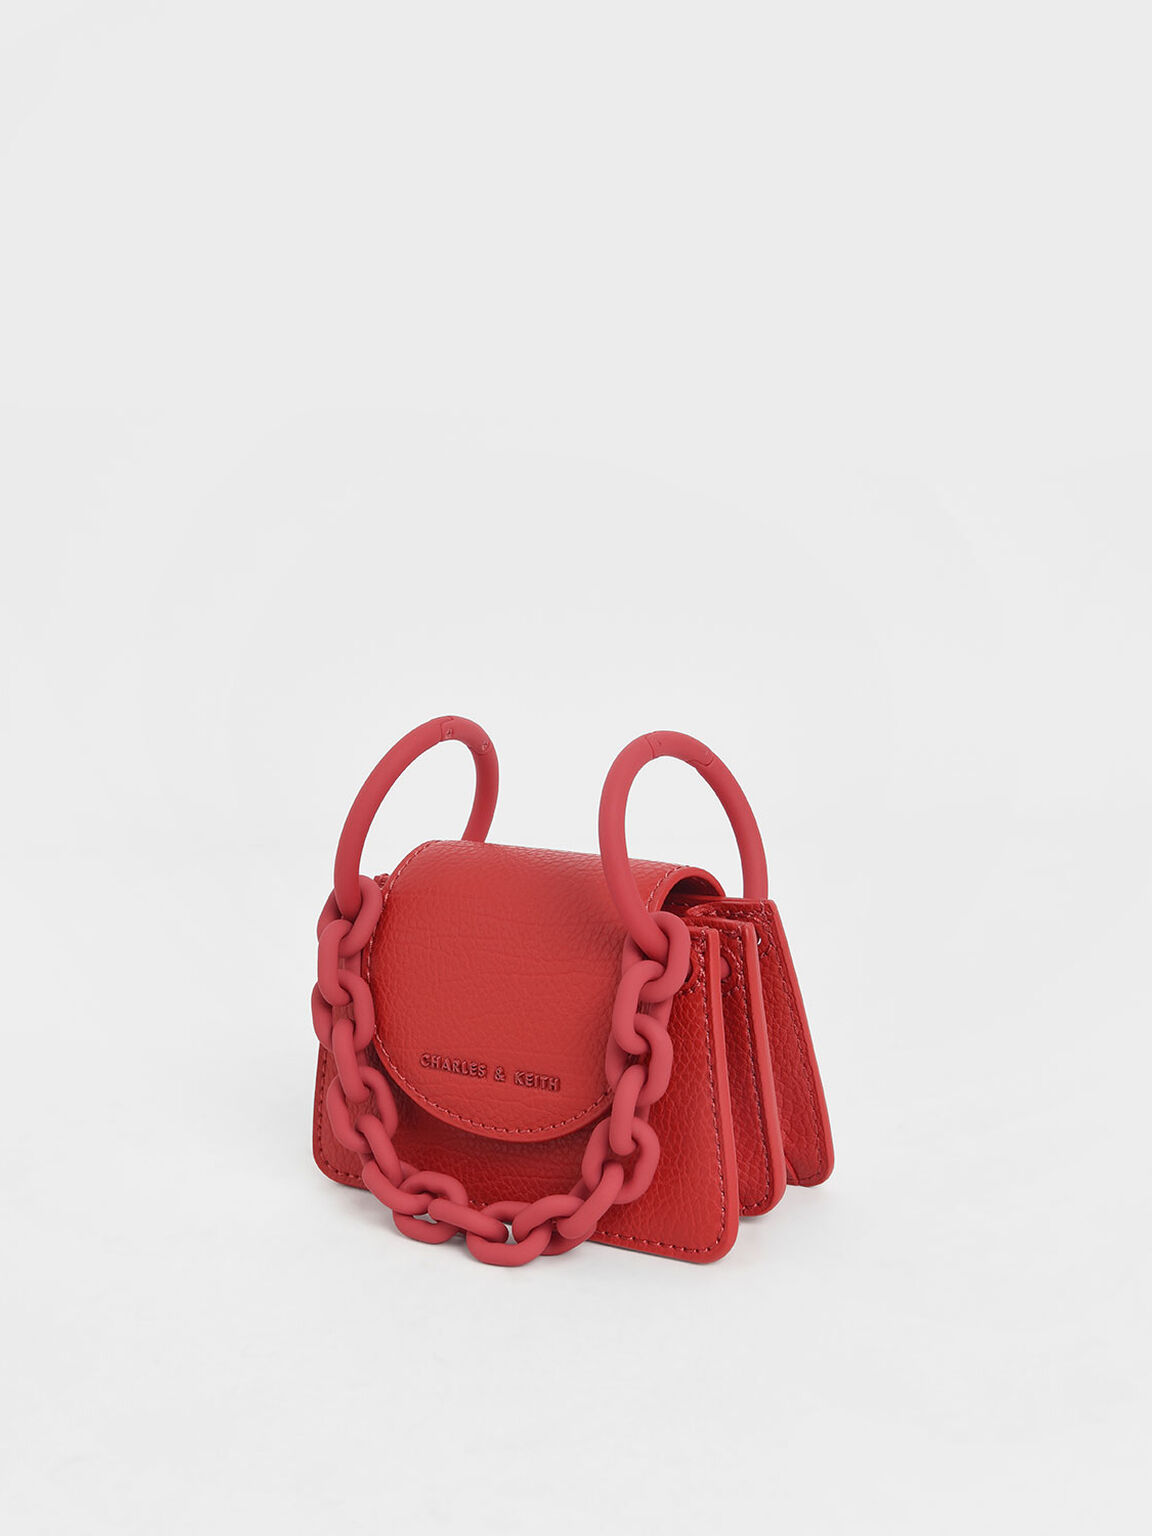 Chunky Chain Handle Mini Bag, Red, hi-res